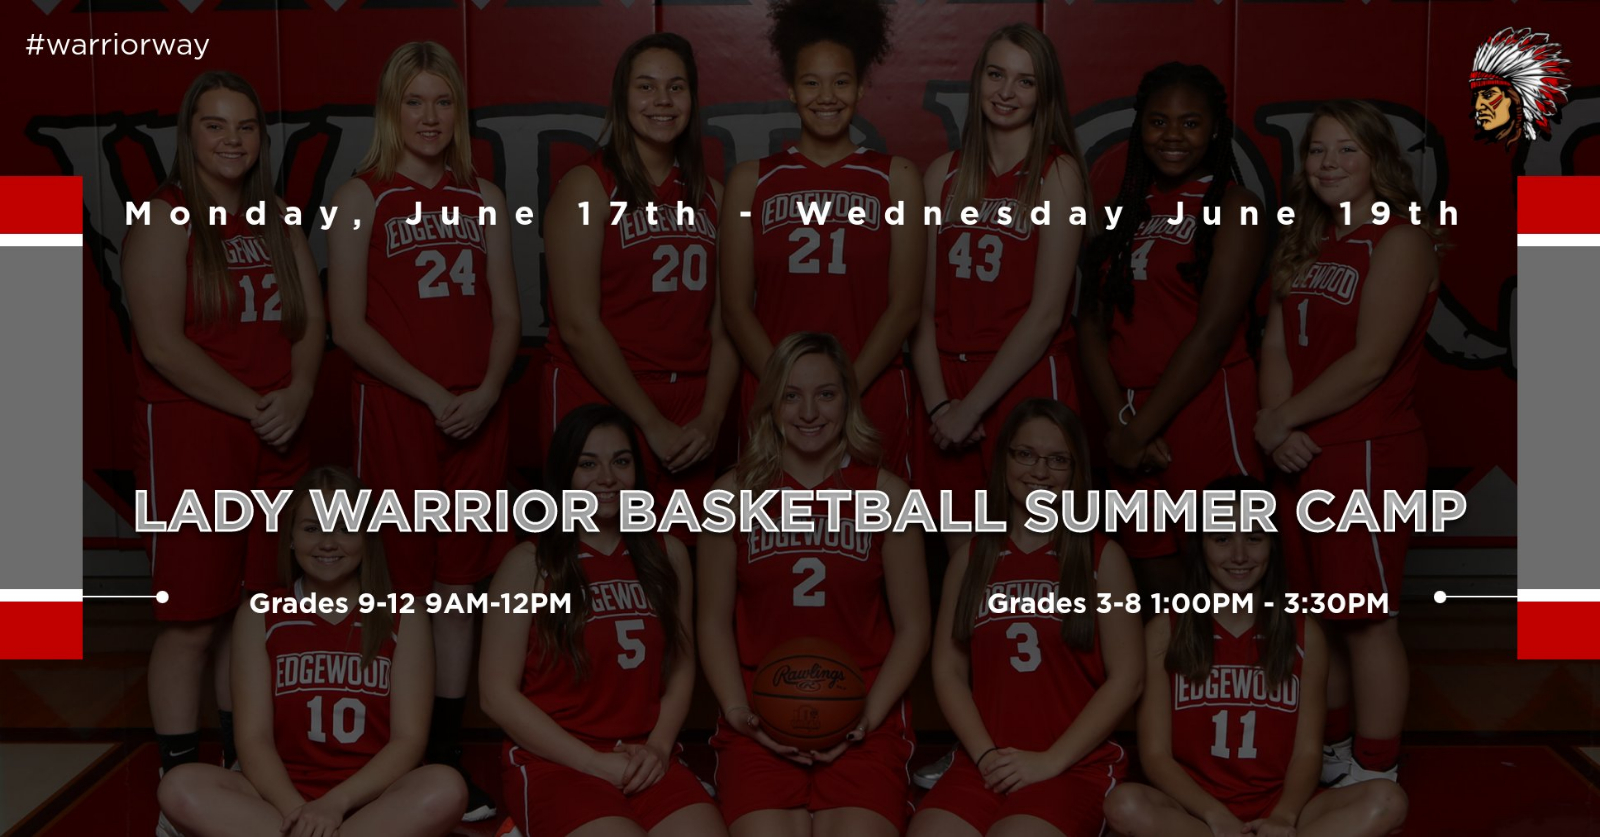 2019 Lady Warrior Basketball Camp Incoming Grades 3rd-12th